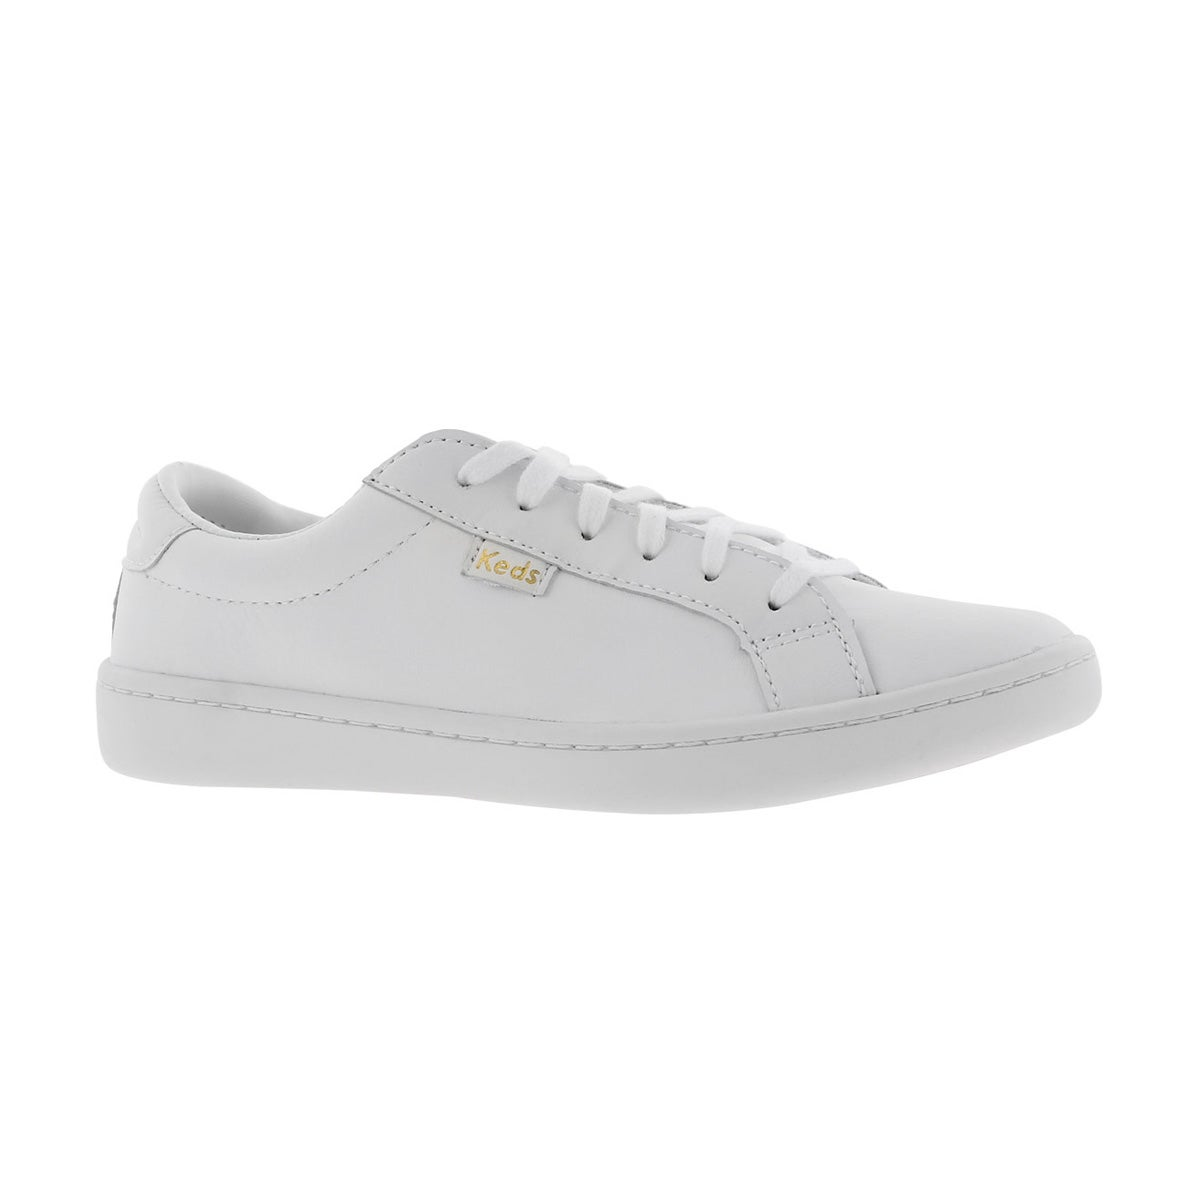 Grls Ace white lace up sneaker